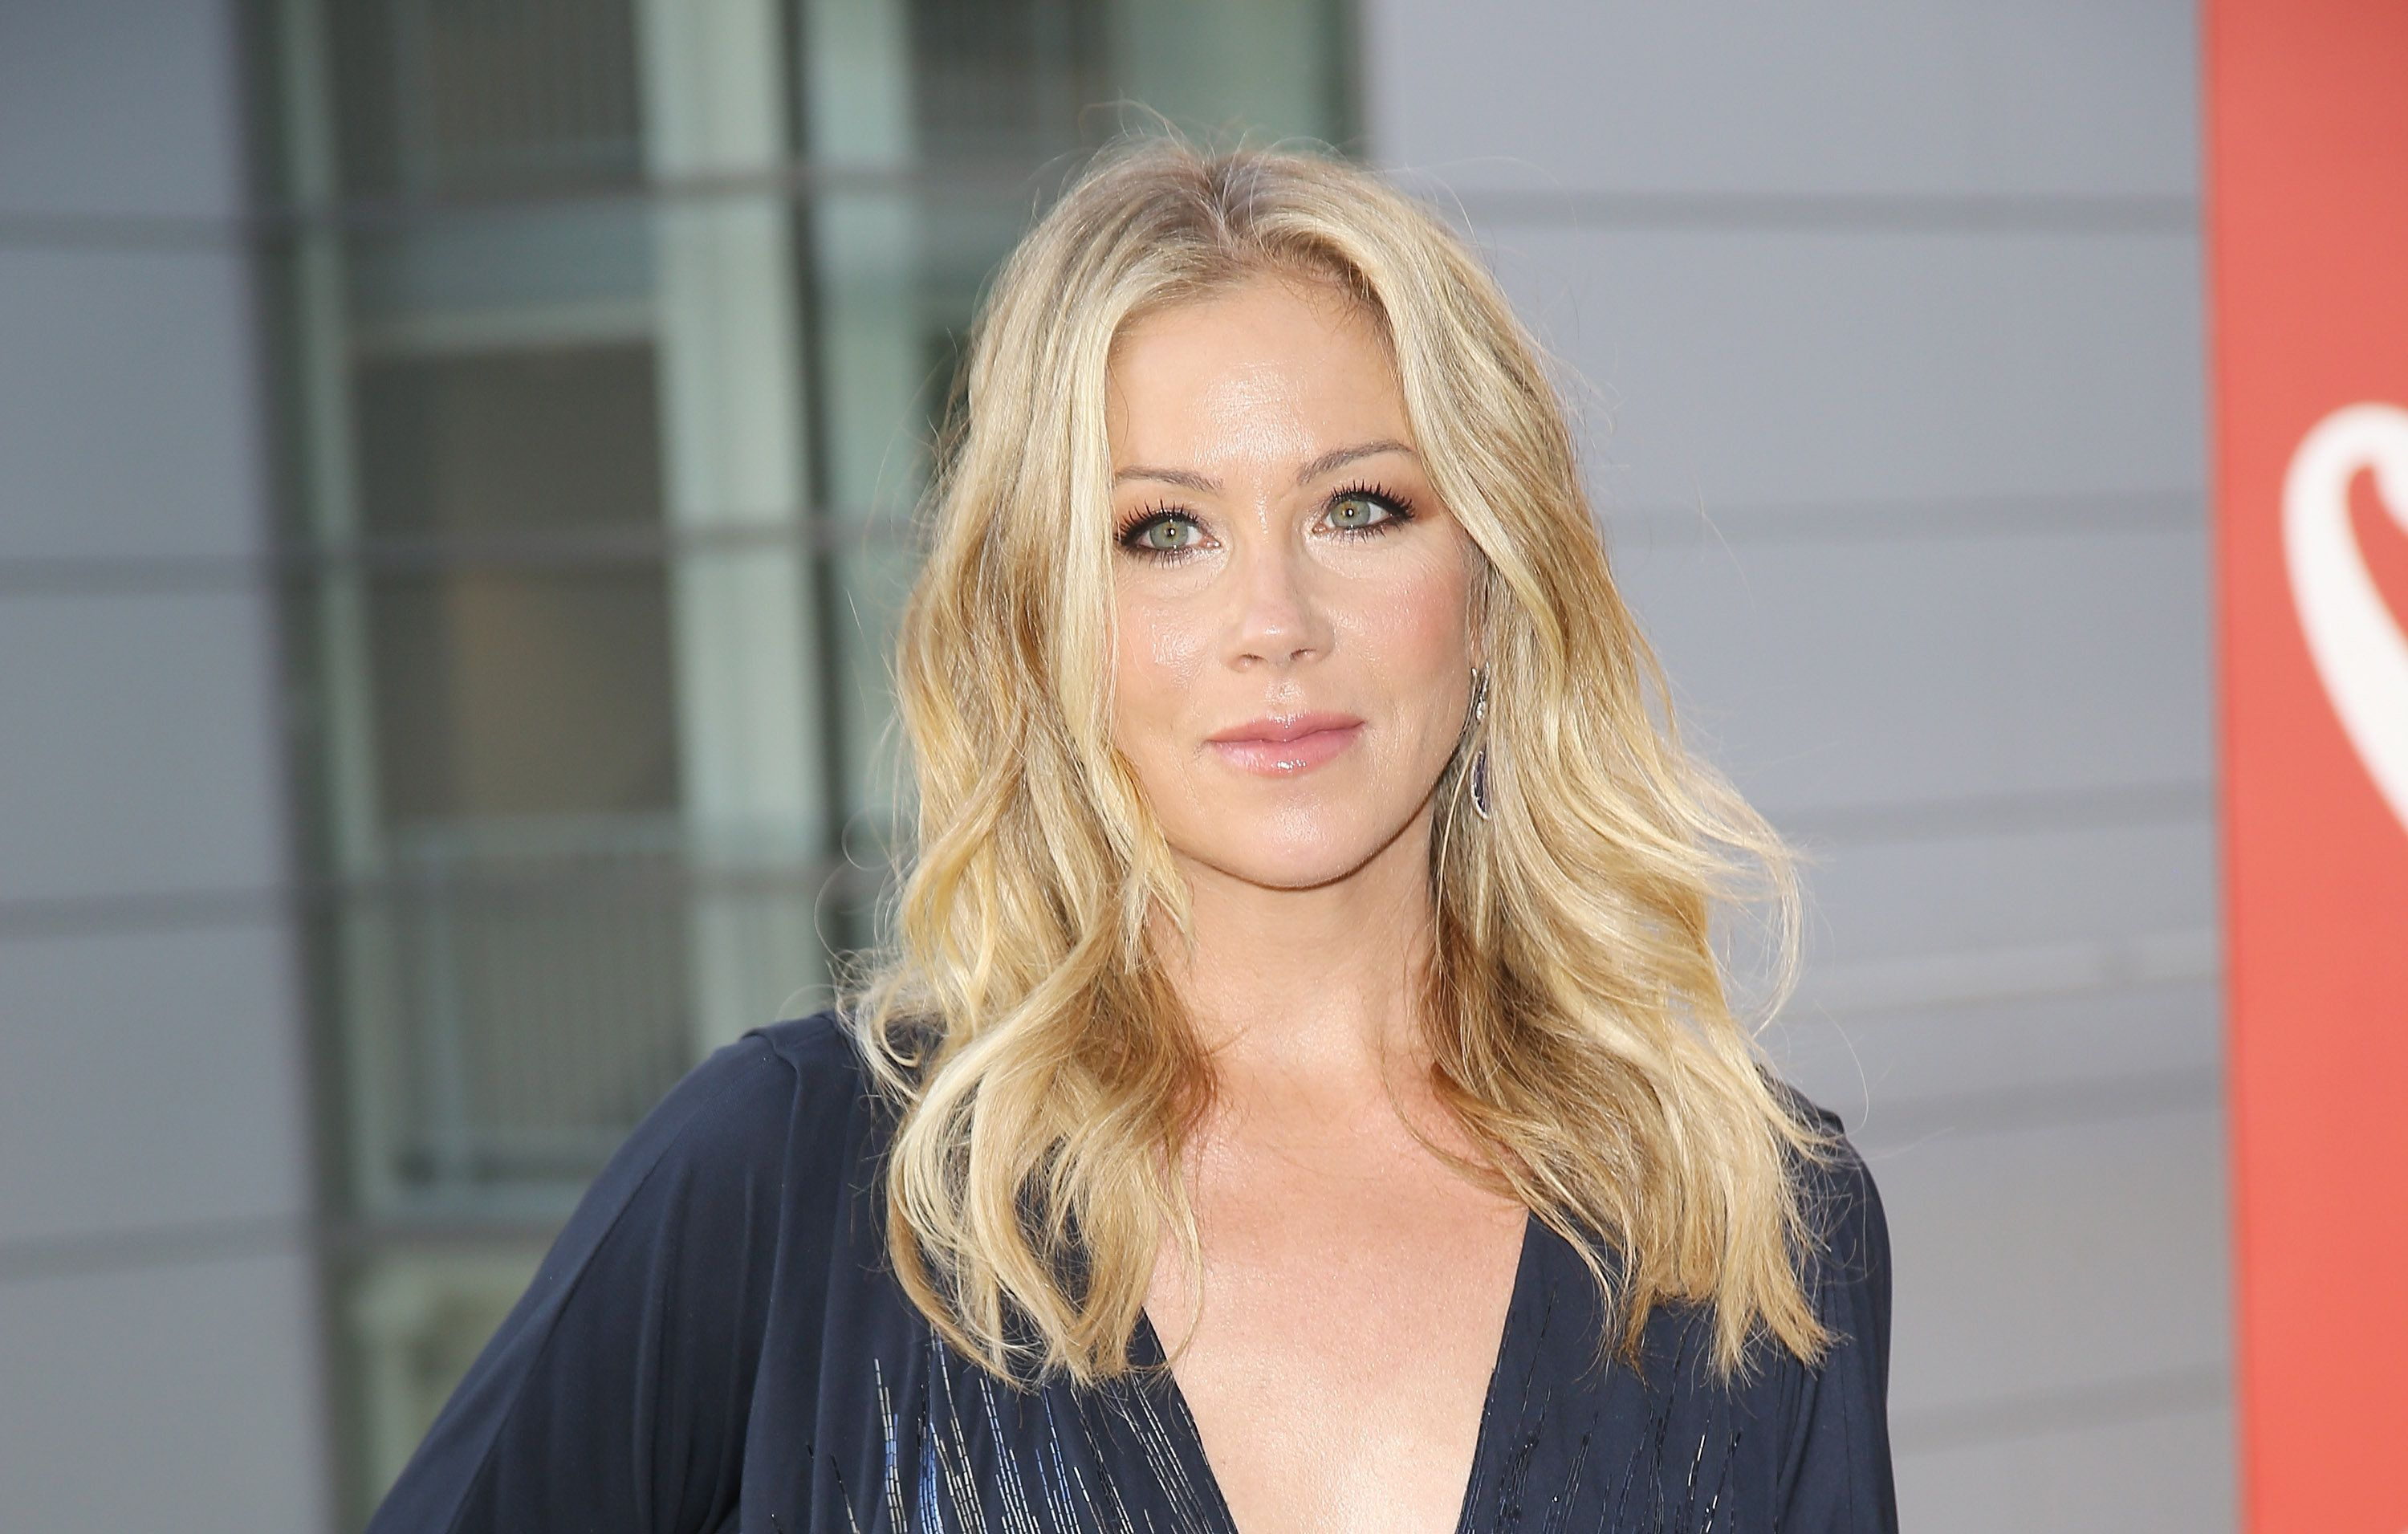 LOS ANGELES, CA - AUGUST 01:  Christina Applegate arrives at Dizzy Feet Foundation's 5th Annual Celebration Of Dance Gala held at Club Nokia on August 1, 2015 in Los Angeles, California.  (Photo by Michael Tran/FilmMagic)